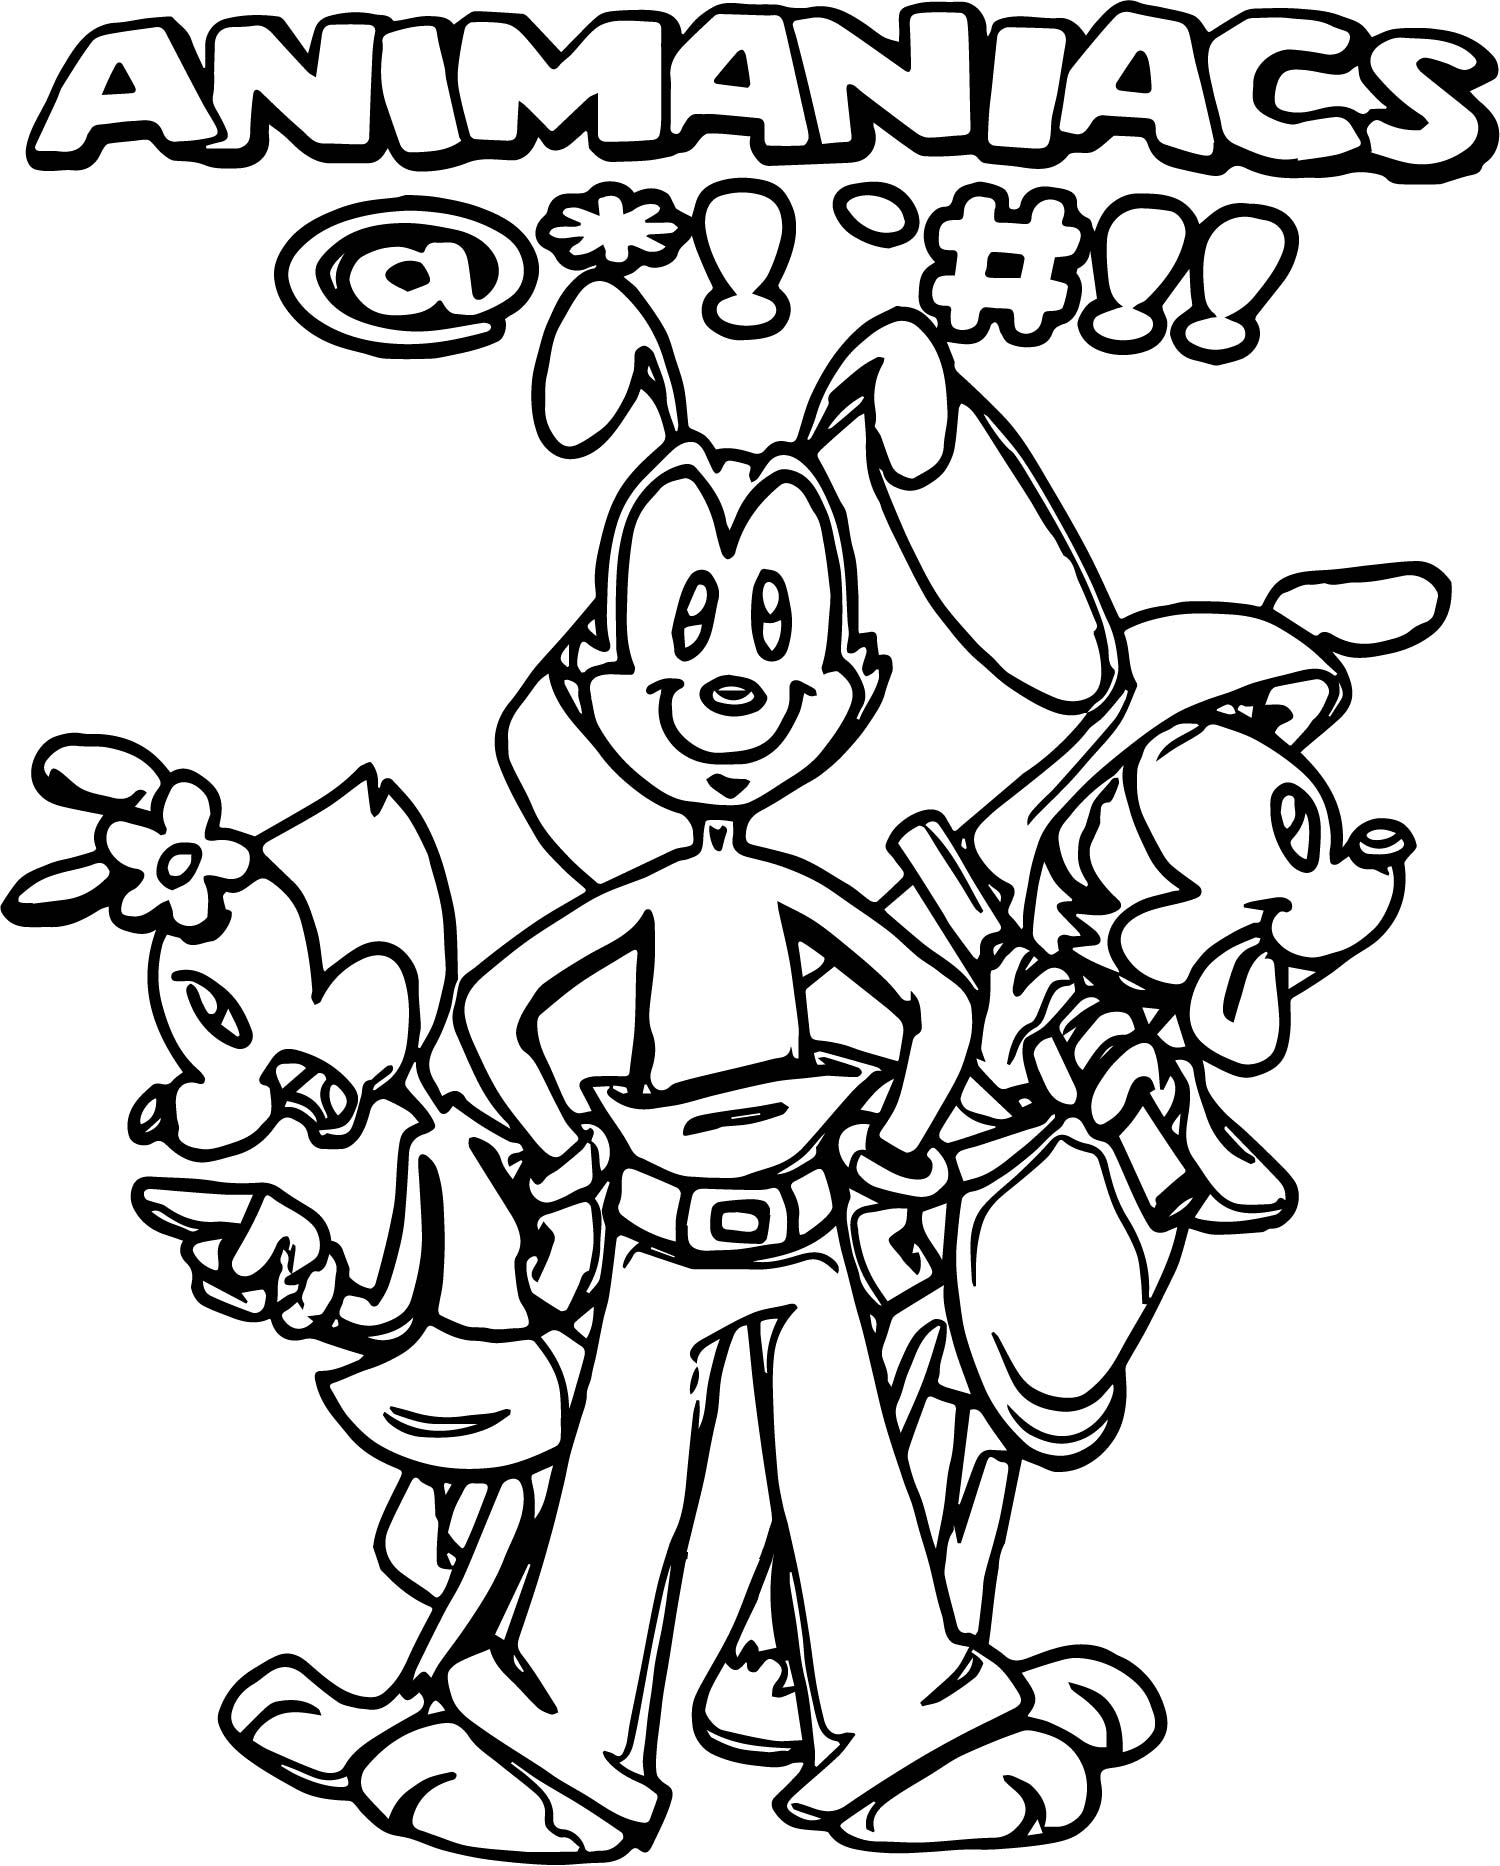 Animaniacs Fighting Game Coloring Page